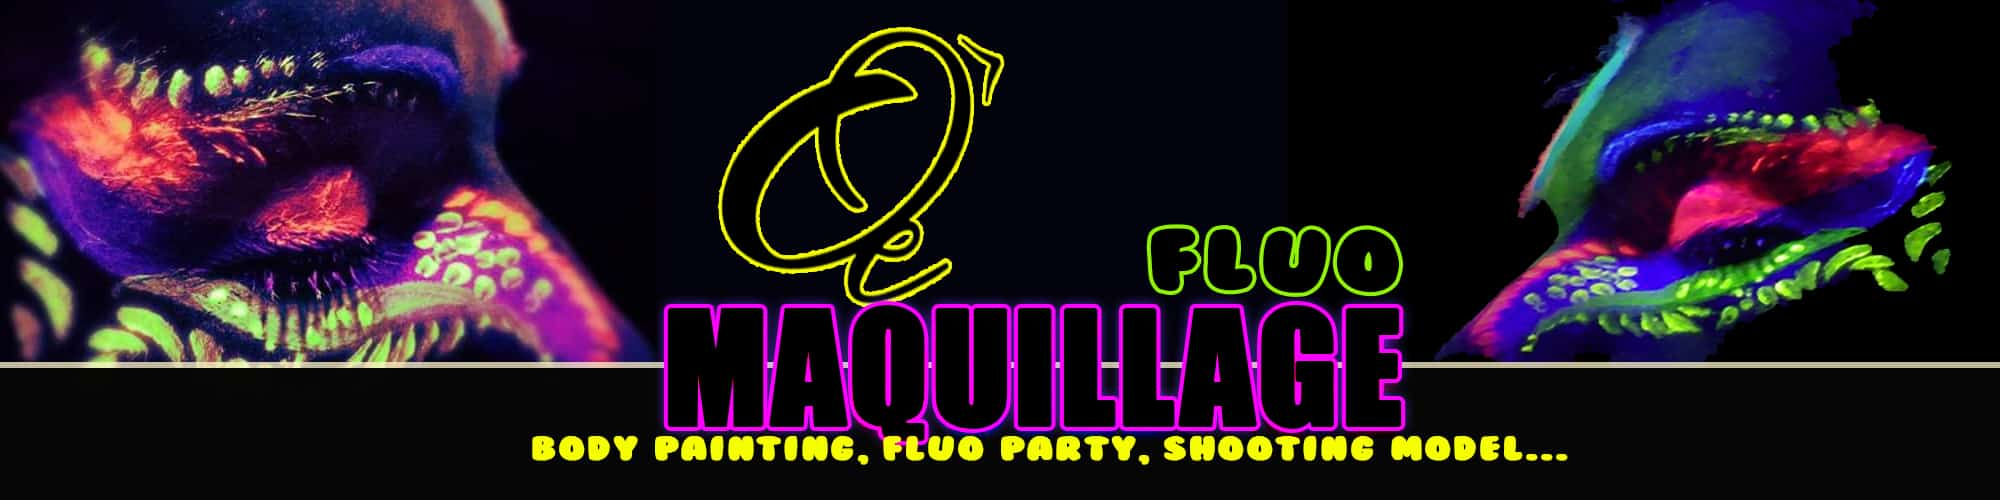 MAQUILLAGE FLUO